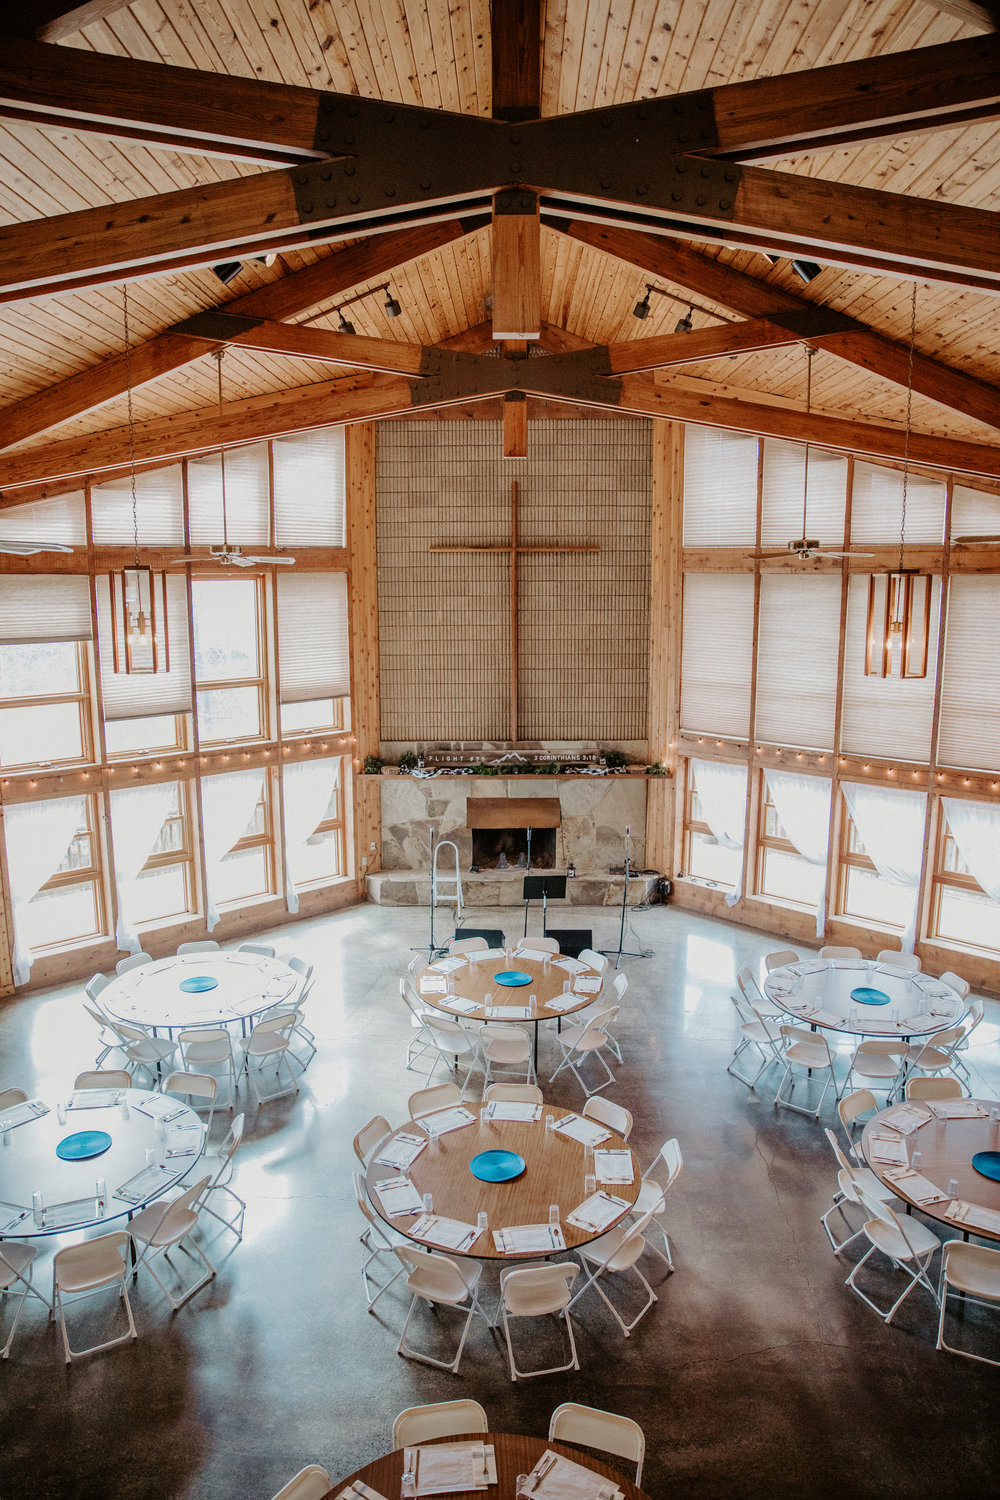 CEREMONY AT THE HURT LODGE    -Packages-    Peak Season (May - October)  Two Day Wedding Weekend:  $2,500    Non-Peak Season (November - April)  two day wedding weekend:  $2,000    One Day Wedding (Available December - March)  Friday, Saturday, or Sunday* -  $1,250   *Sunday available after 10:30 am      -Occupancy-    Indoor Dining Room Only:   Full Table Seating:  150   Combination Seated / Standing :  175     Indoor Dining Room & Outdoor Deck:   Full Table Seating:  225   Combination Seated / Standing :  250   *Indoor tables and chairs provided by the venue Seat 125*     -Food and Catering-   At Johnston Woods you are welcome to use our in house catering for convenient, cost effective options, or for $150 you can bring in the caterer of your choice. Please remember, Johnston Woods is an alcohol free venue.     -Hours-   We hope you fully utilize the many benefits your rental presents, so you are welcome to come and enjoy your event as early as 9 AM the day your reservation begins and stay as late at 11:30 PM the day your reservation ends.  (Any removal of decorations or cleaning must be completed by 12am the last night of your rental)